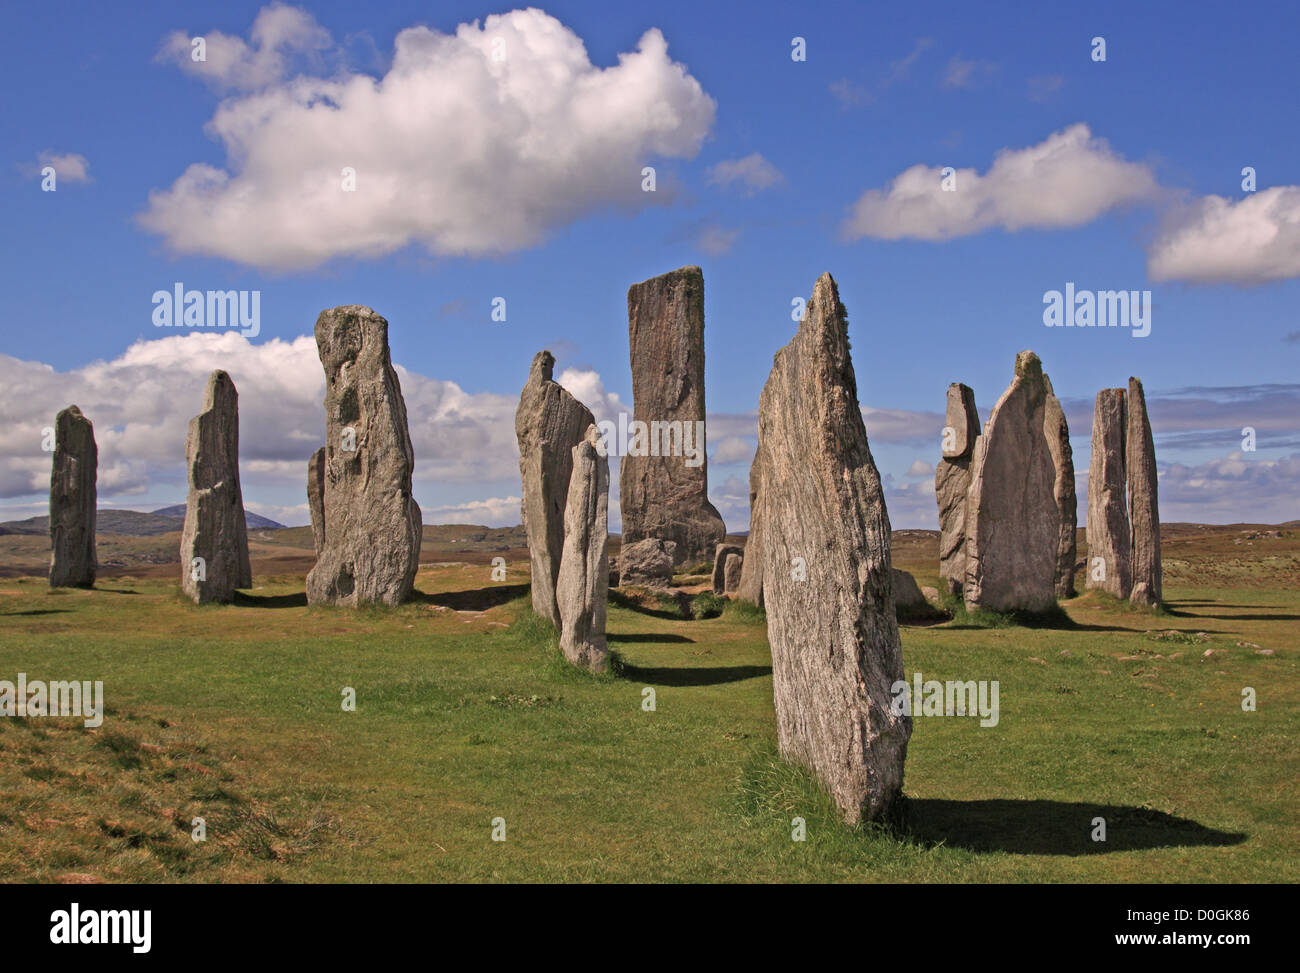 UK Scotland Outer Hebrides Isle of Lewis Callanish Standing Stones - Stock Image